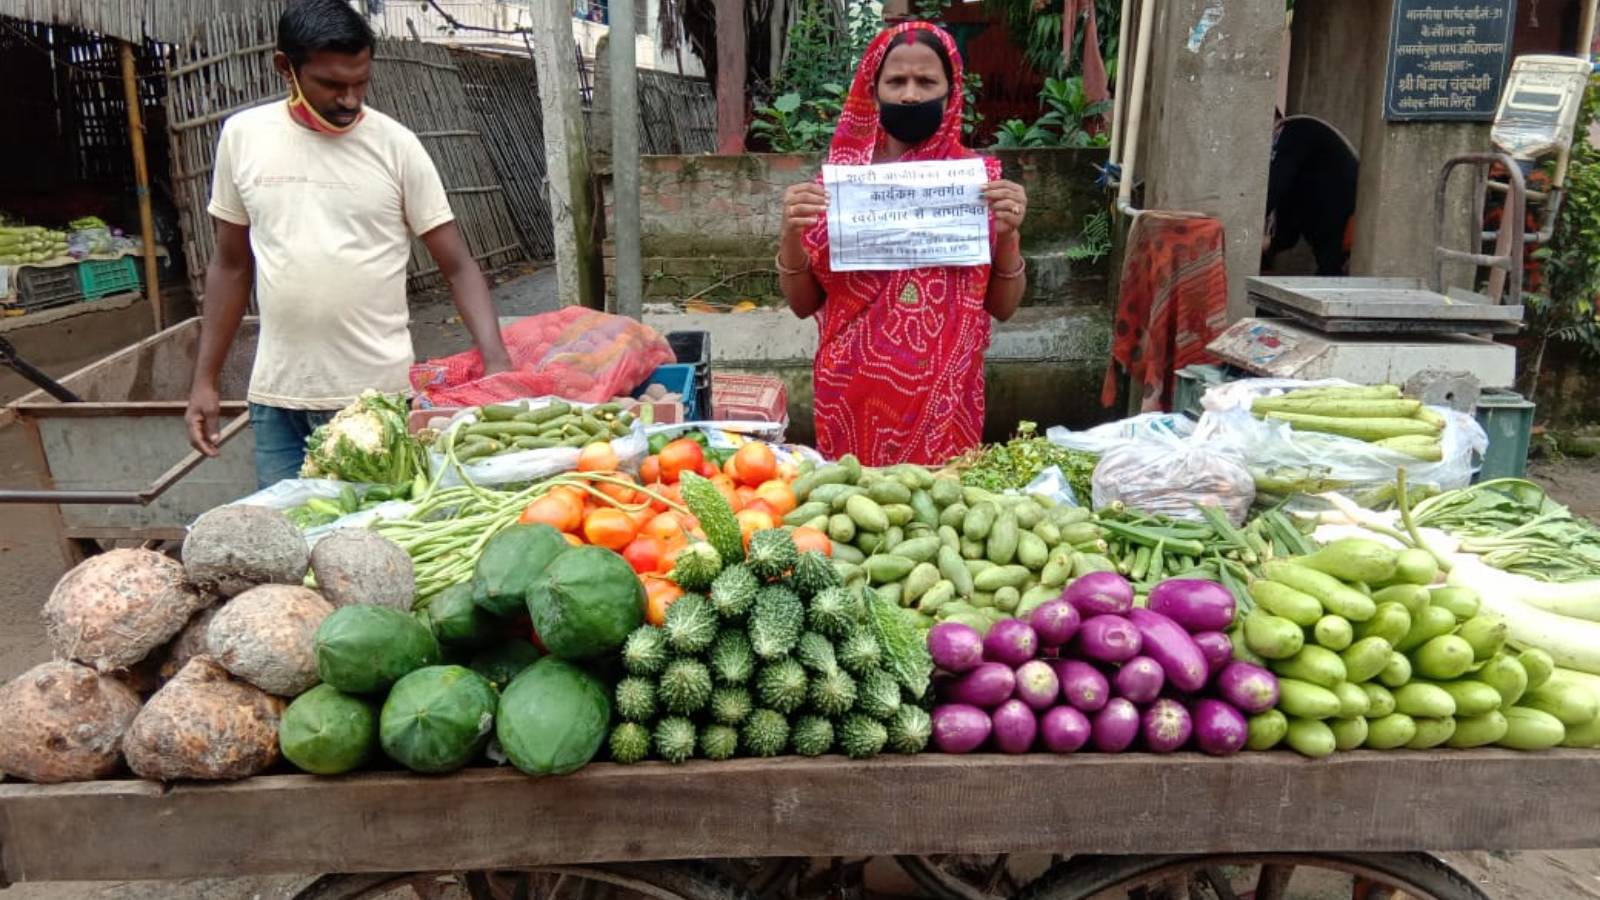 Livelihood and nutritional support program for rural women: